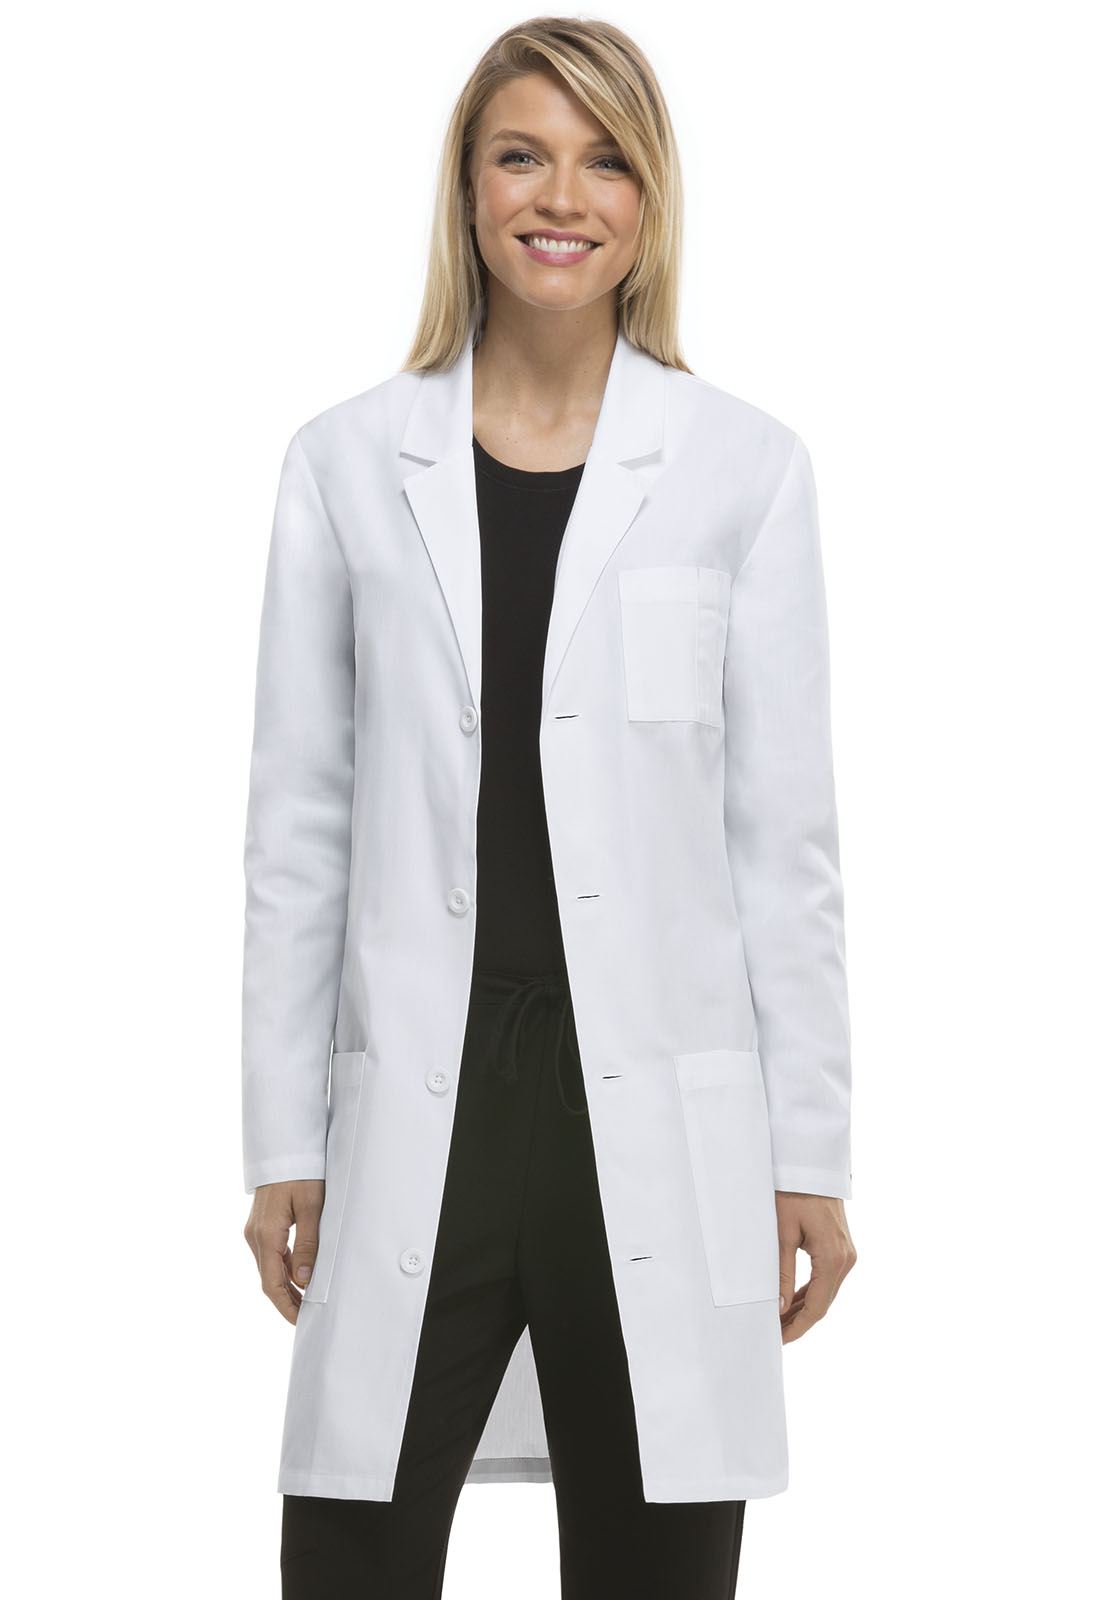 Embroidered Short Length Lab Coats